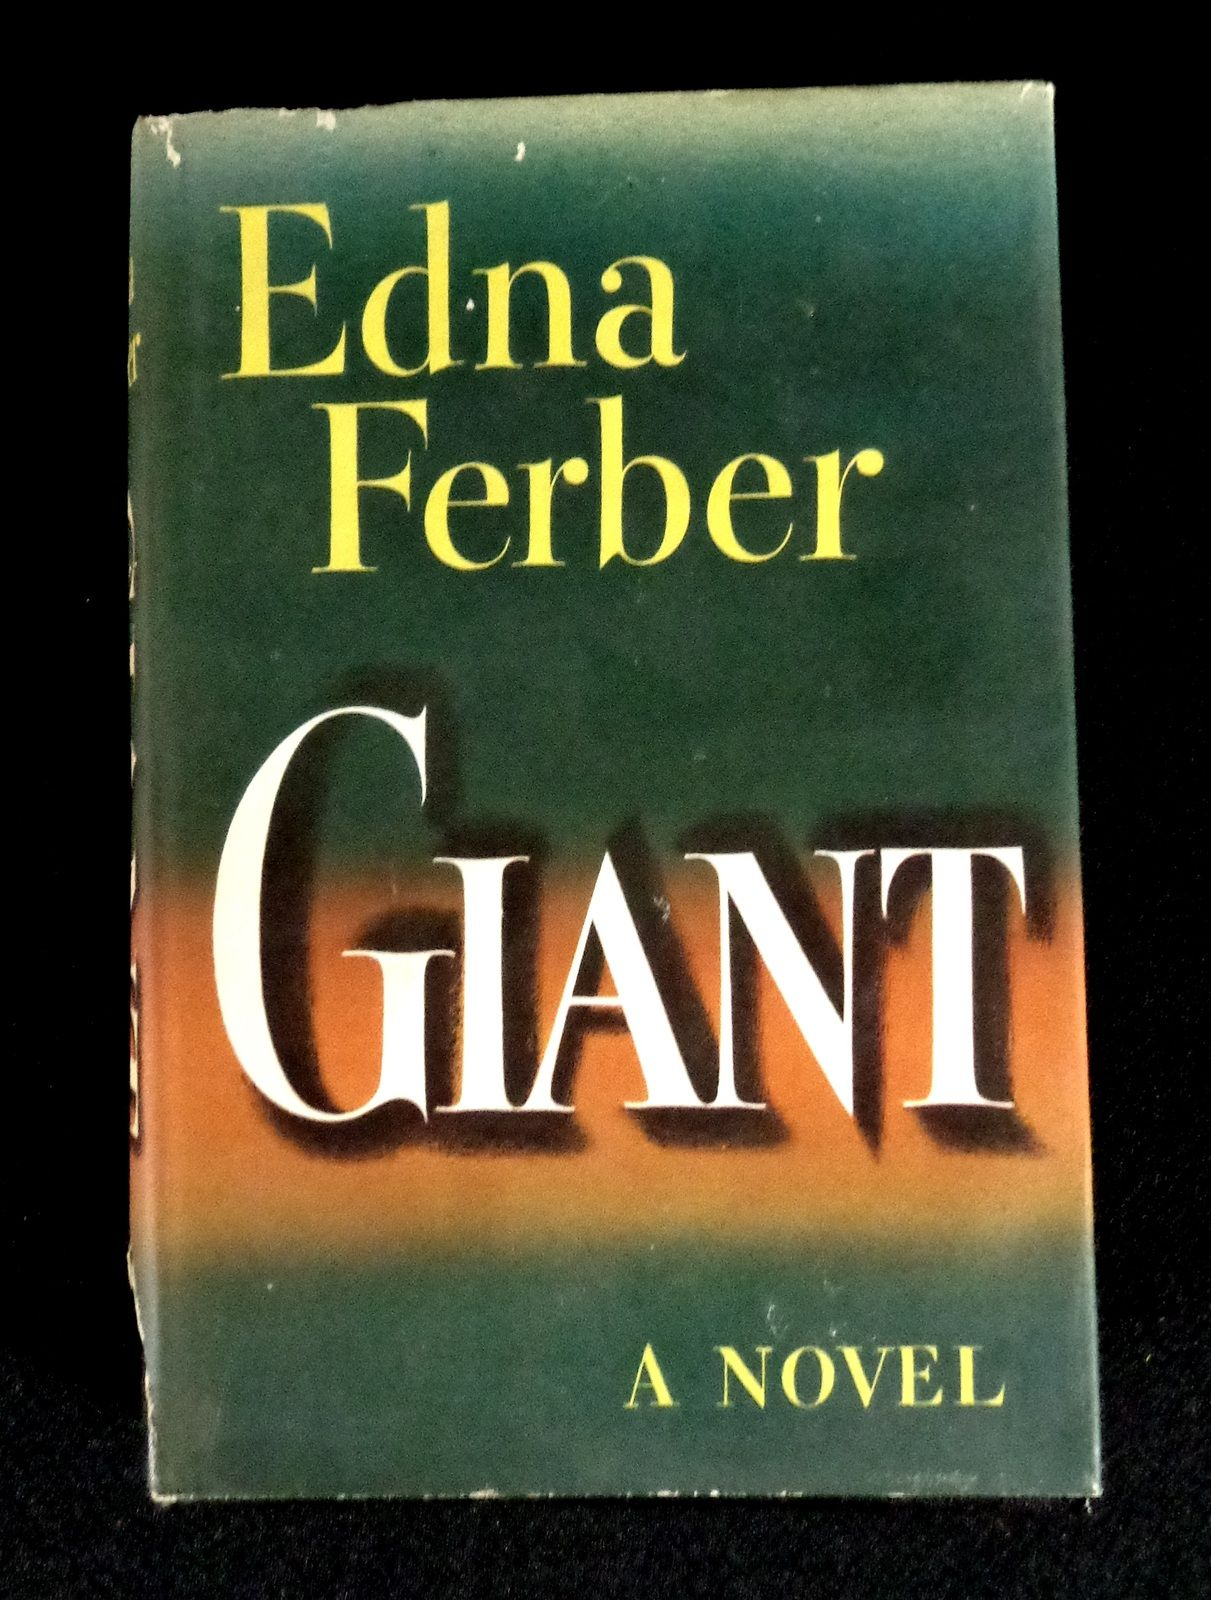 This Vintage Edition Of Giant By Edna Ferber Was Printed For The Sears Readers Club Back In 1952 Book Has 447 Numbered Pages And Comes With Its